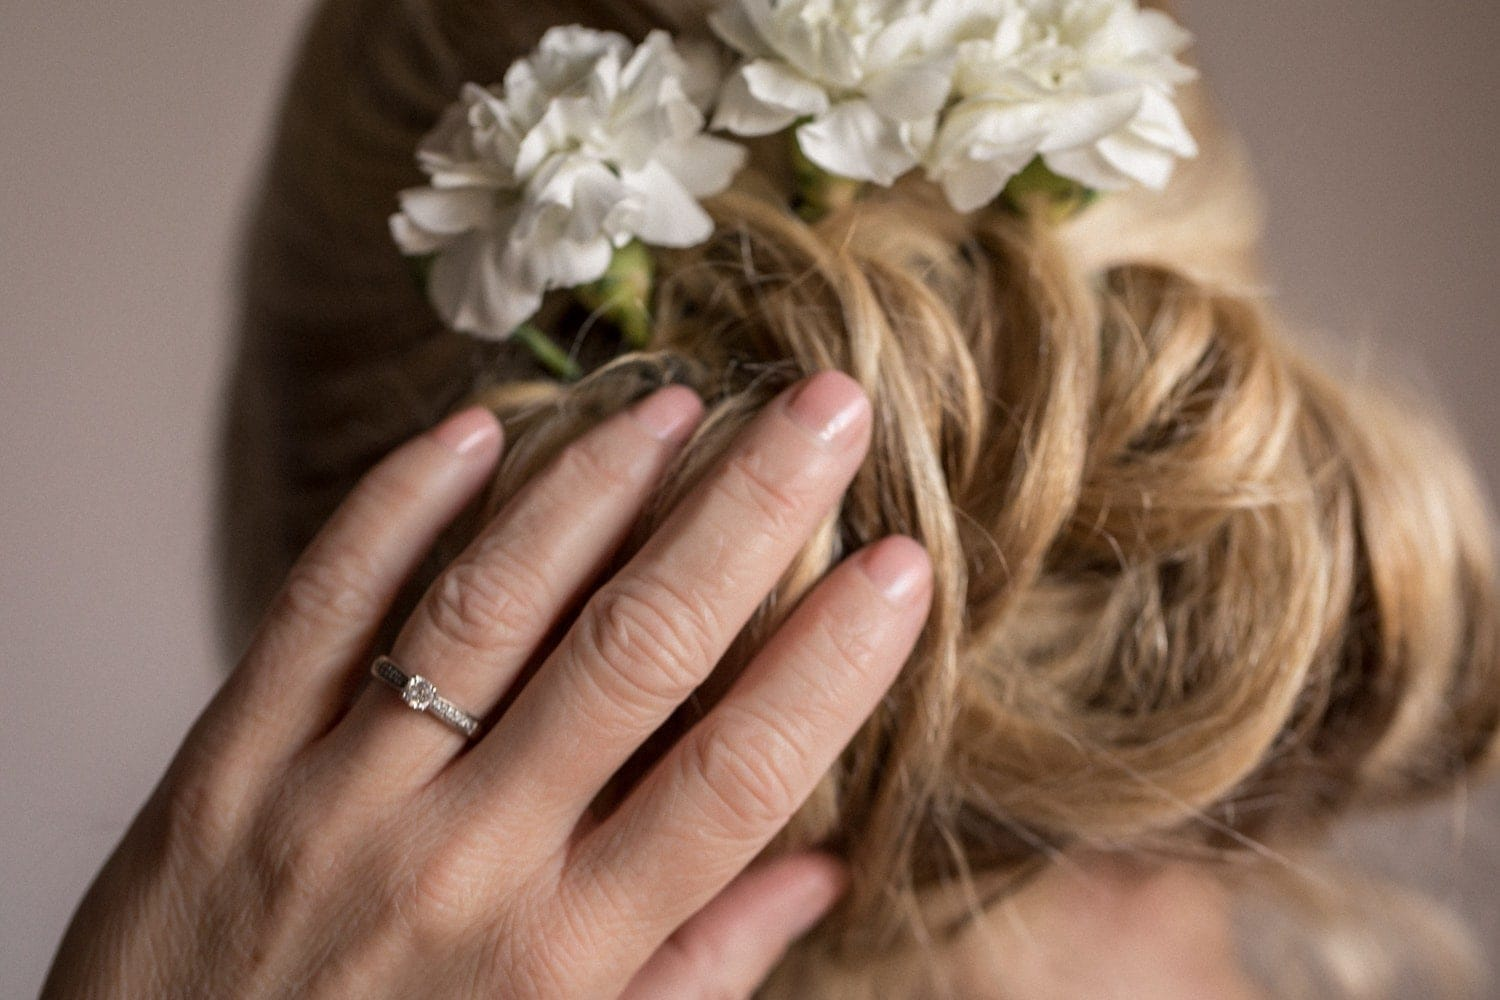 Bride with white flowers in hair during bridal preparation.